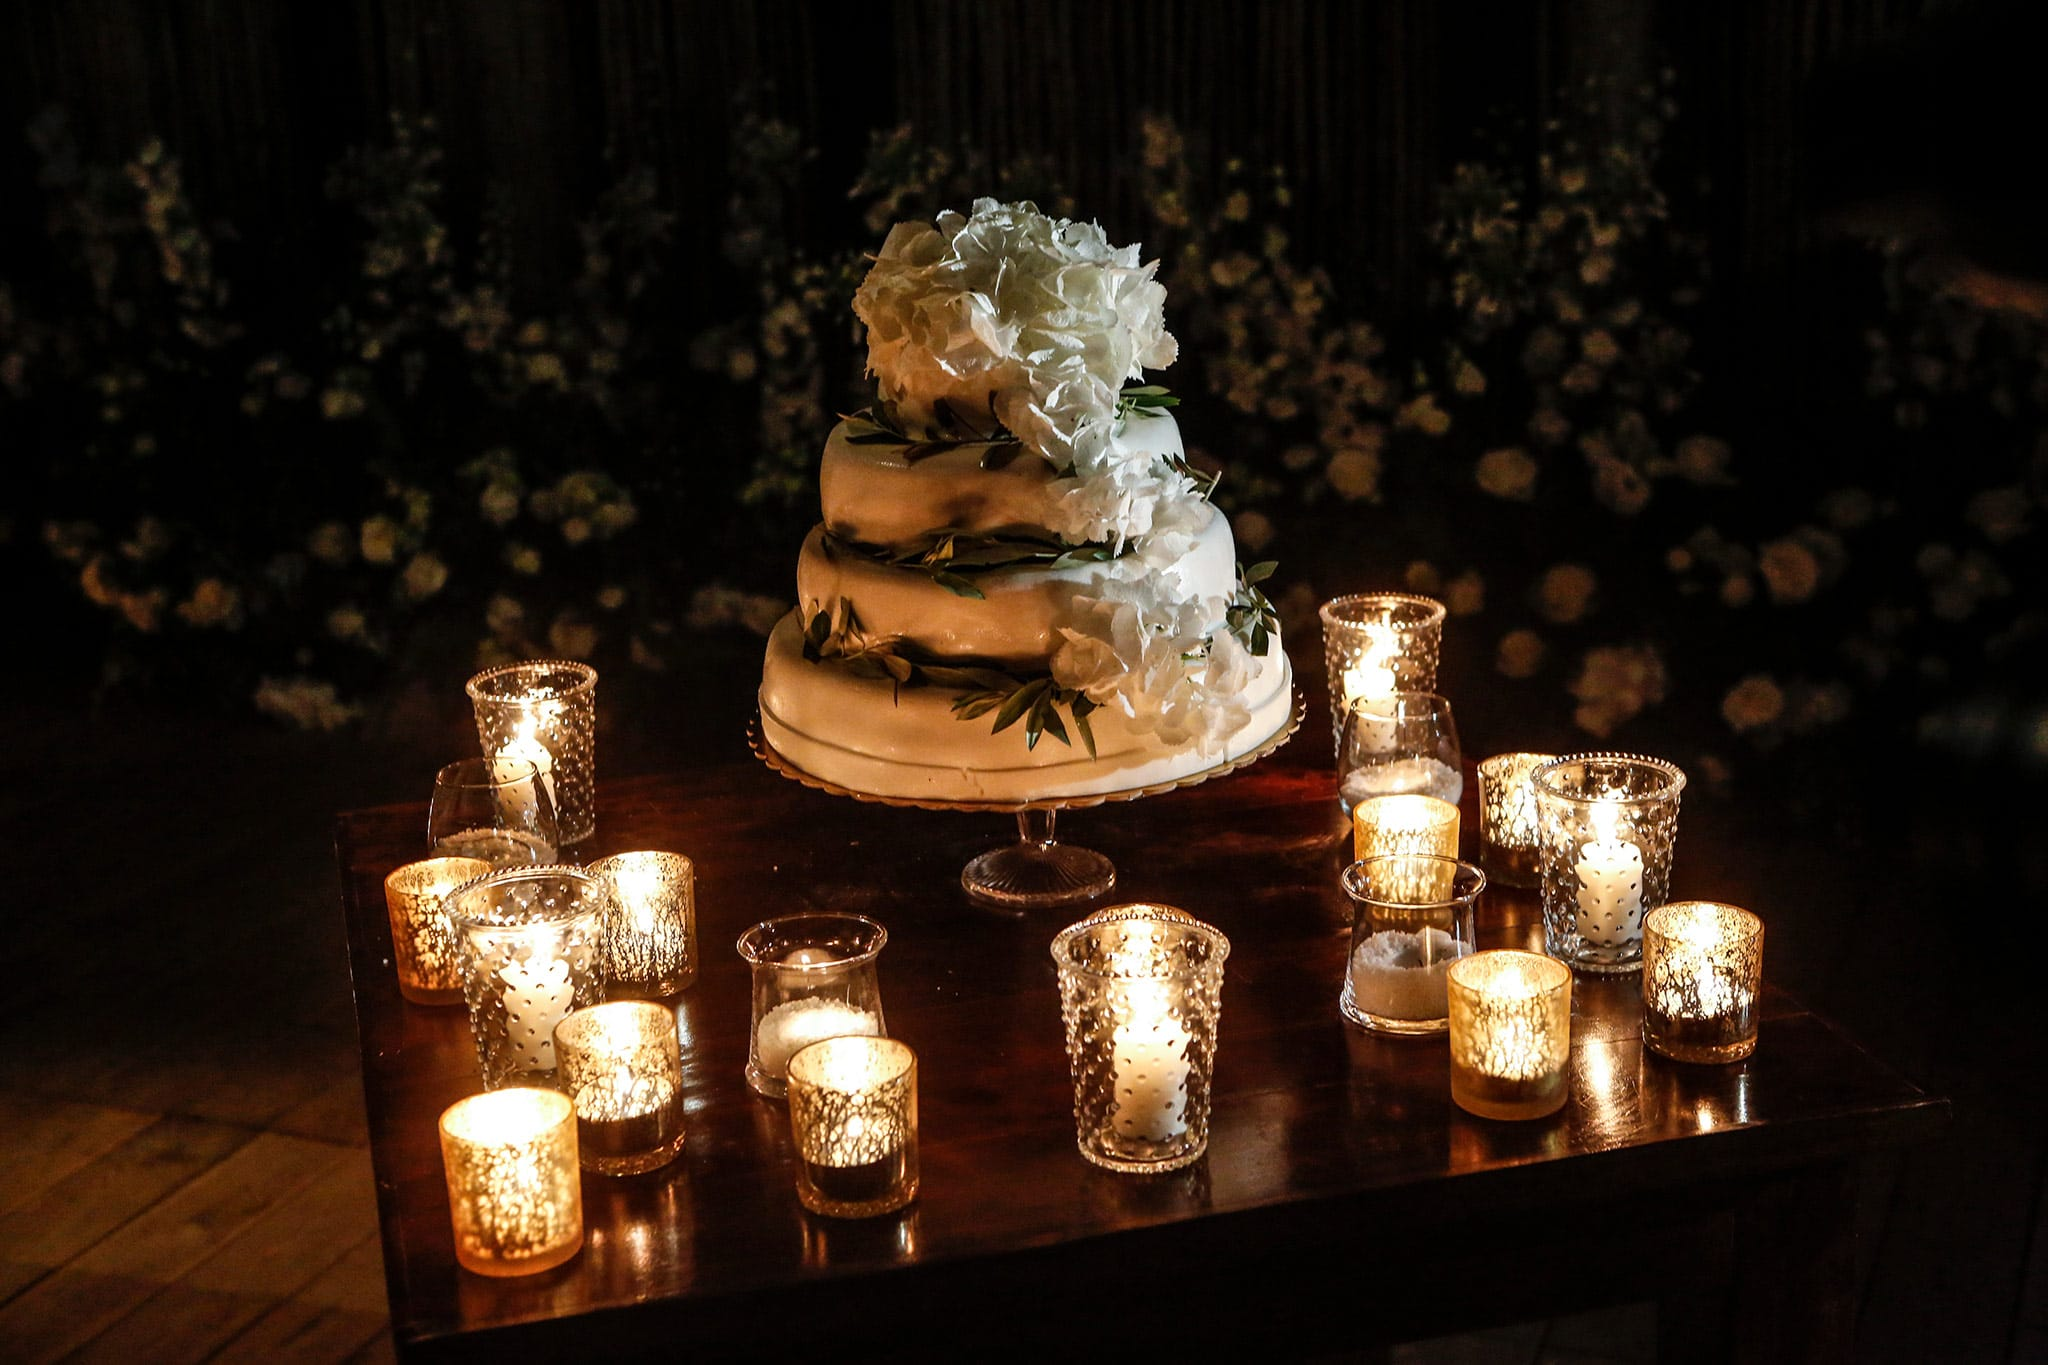 Agustina and Gianluca, wedding cake